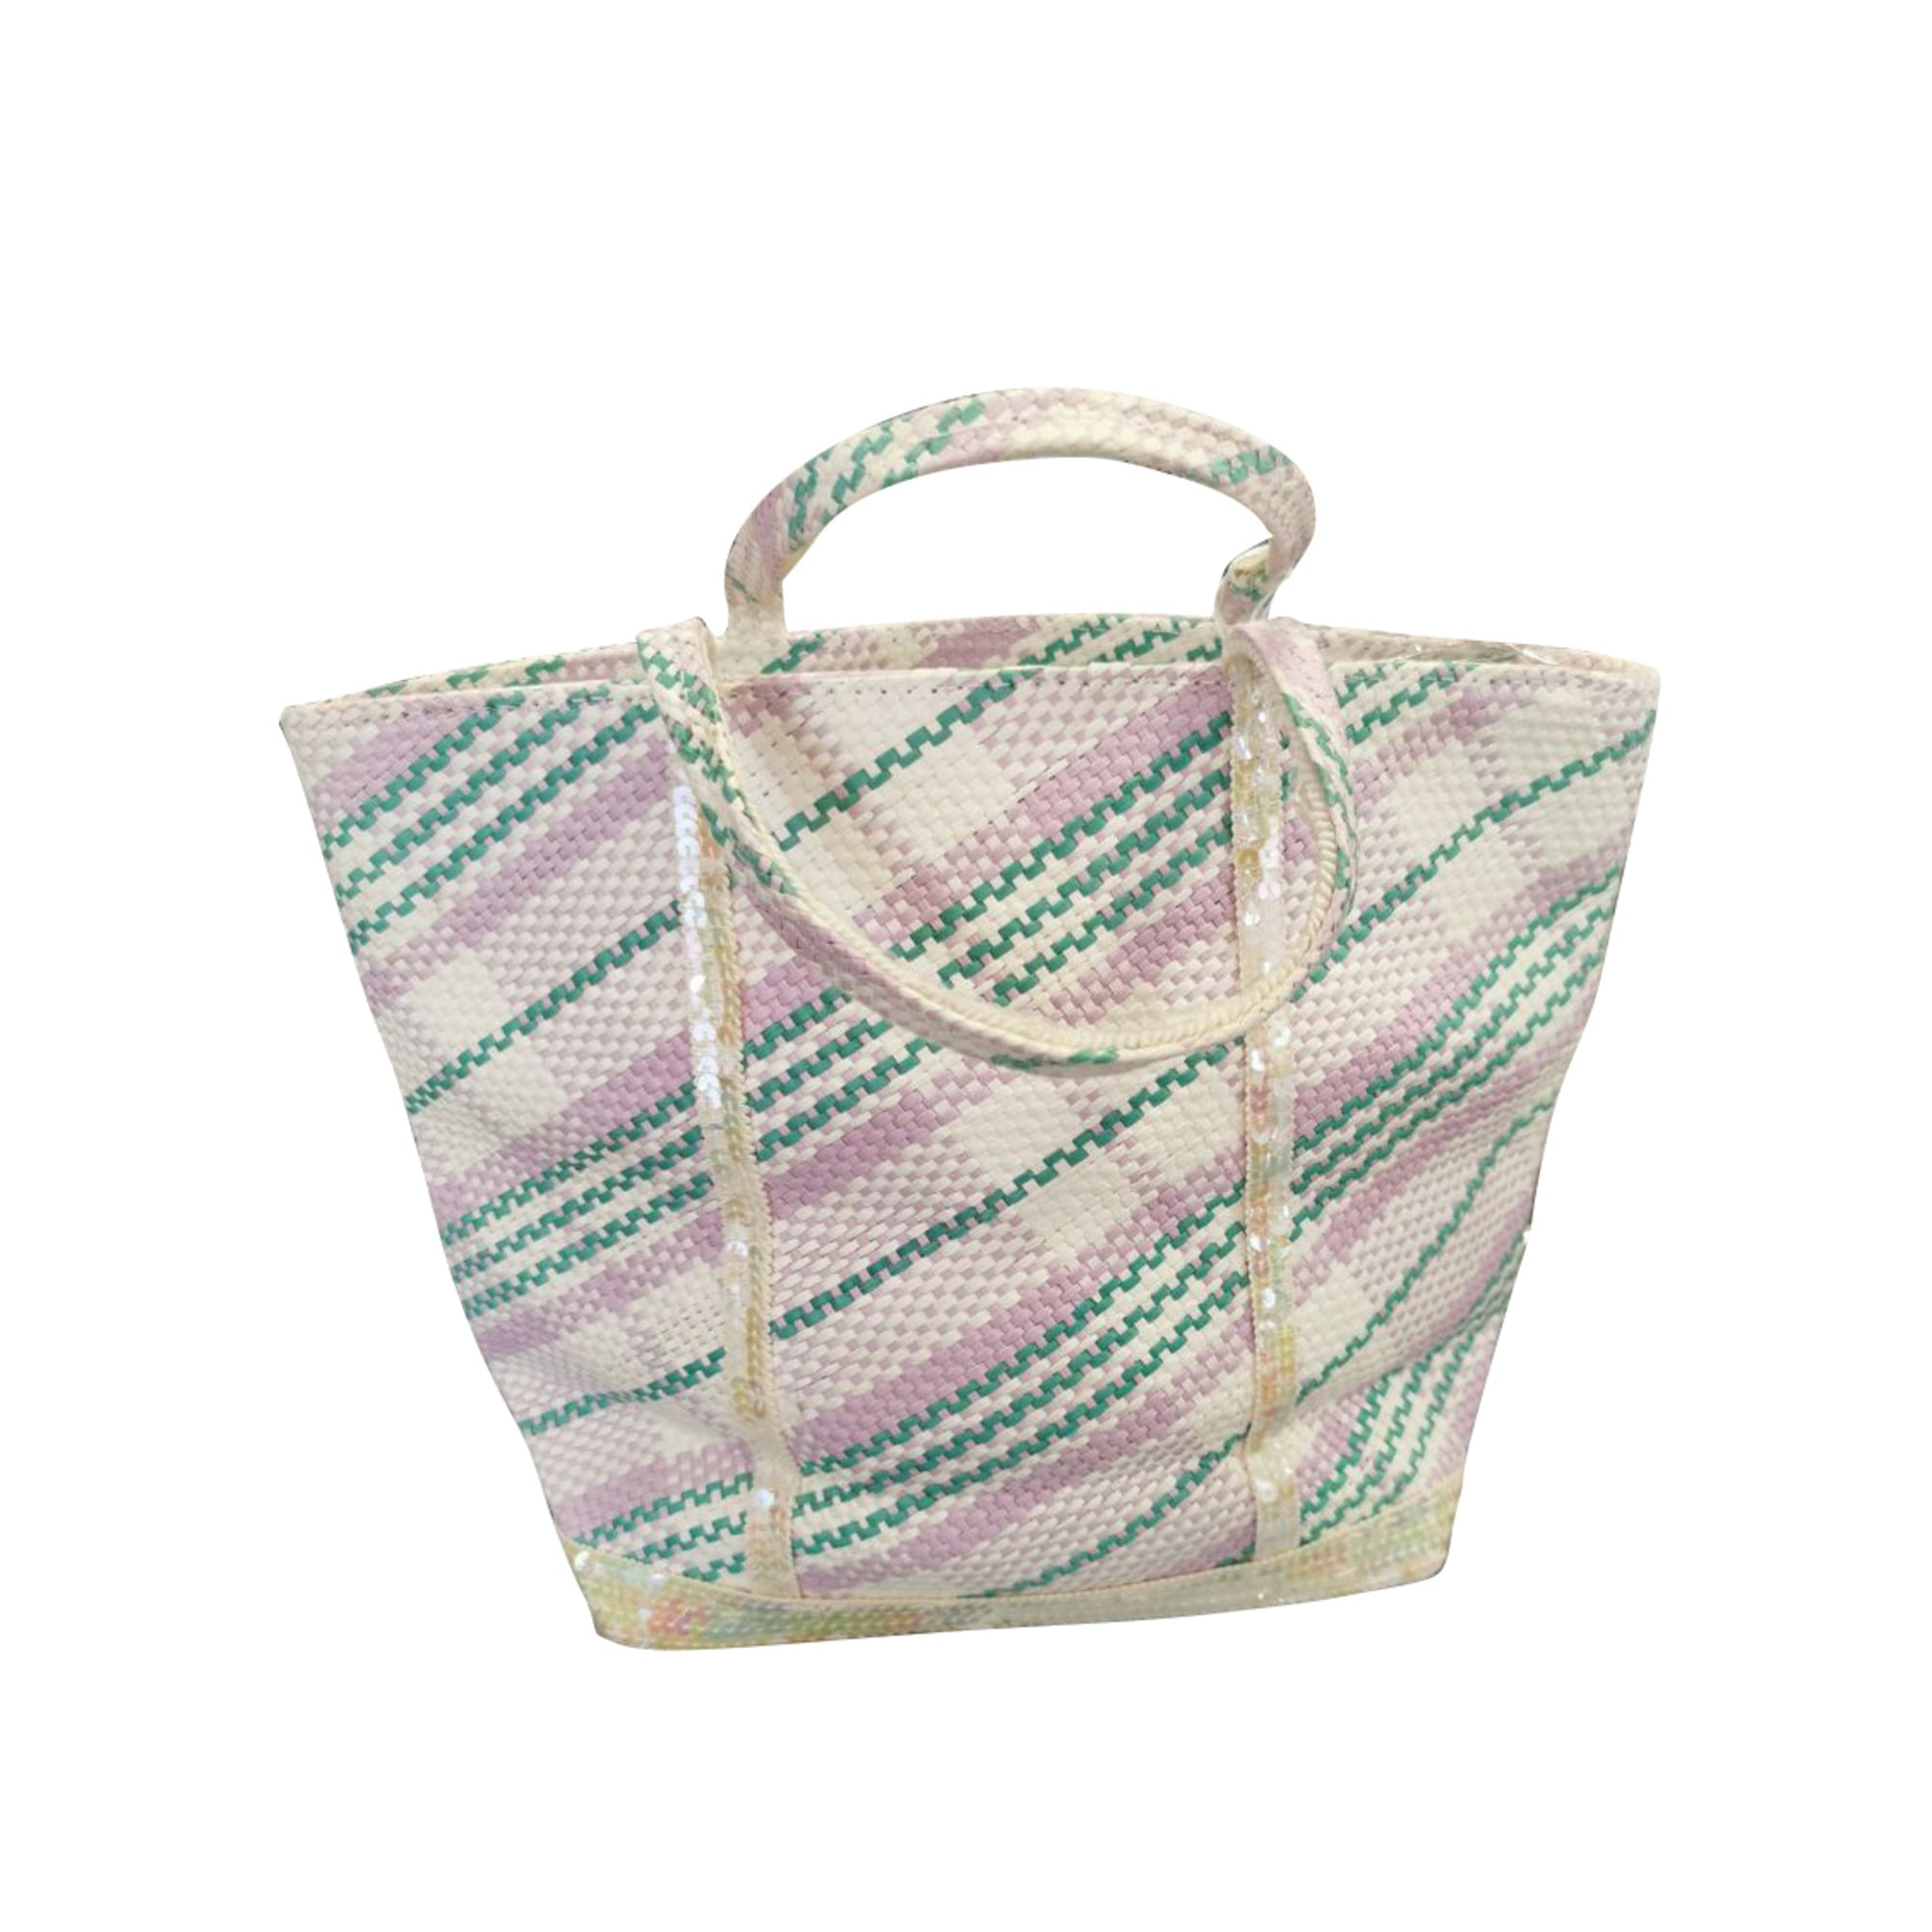 Non-Leather Handbag VANESSA BRUNO Multicolor